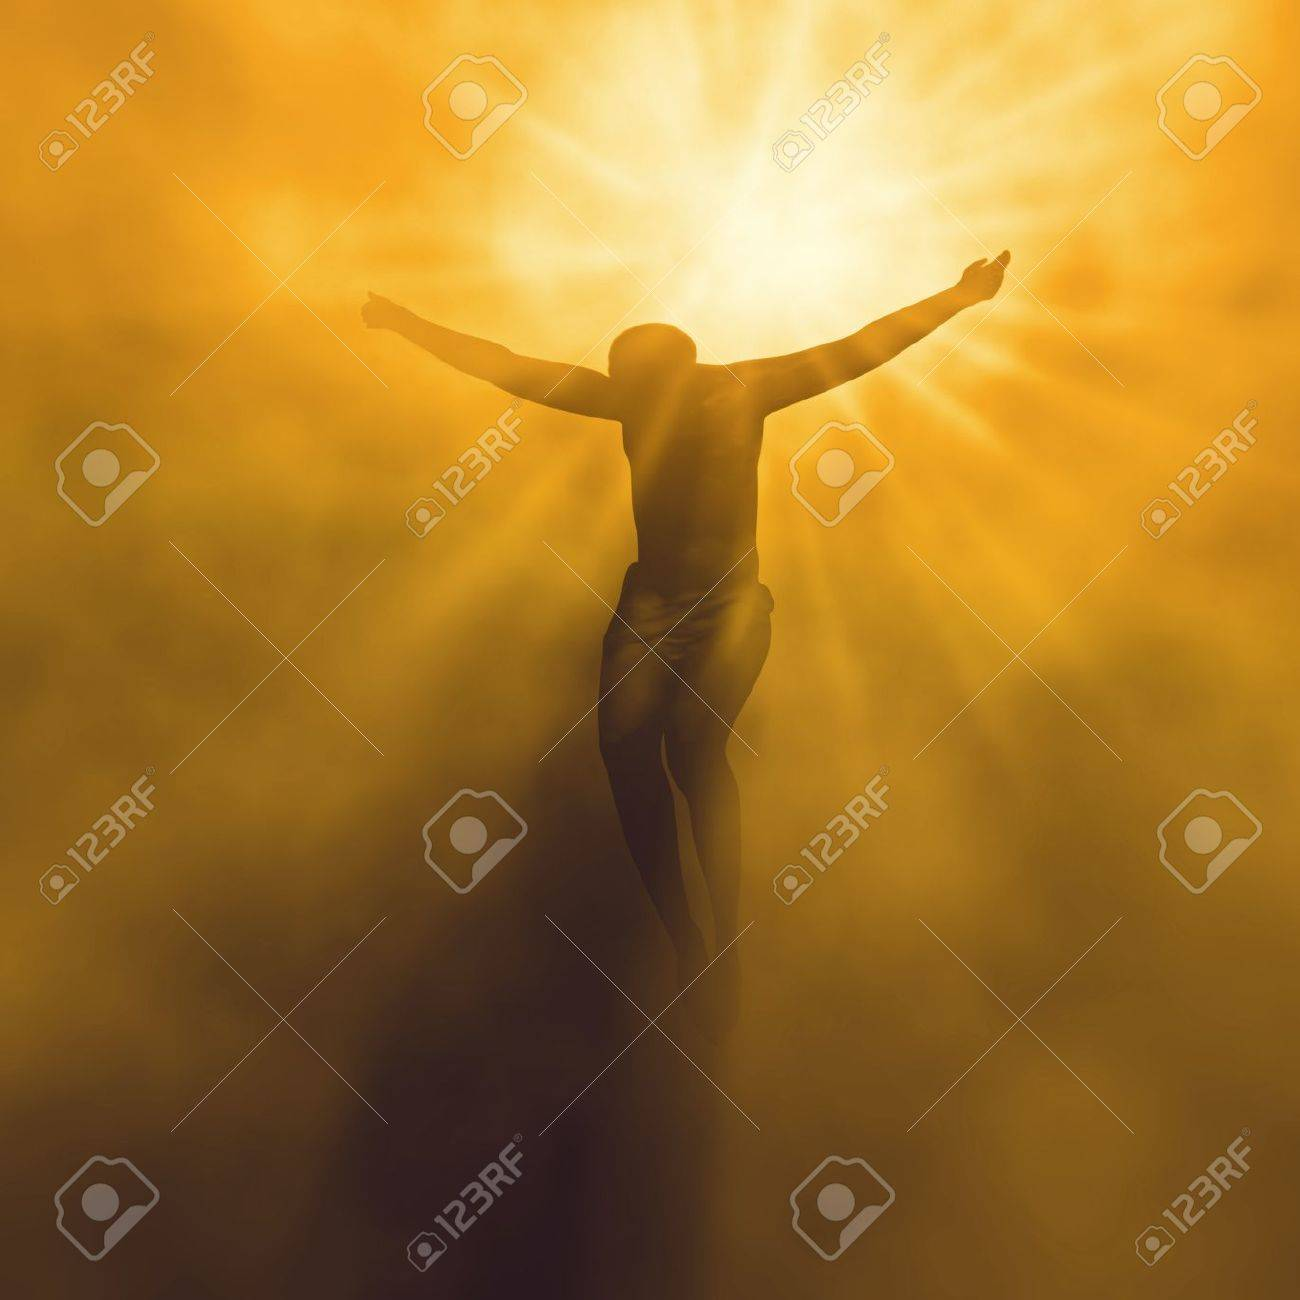 jesus christ in heaven stock photo picture and royalty free image